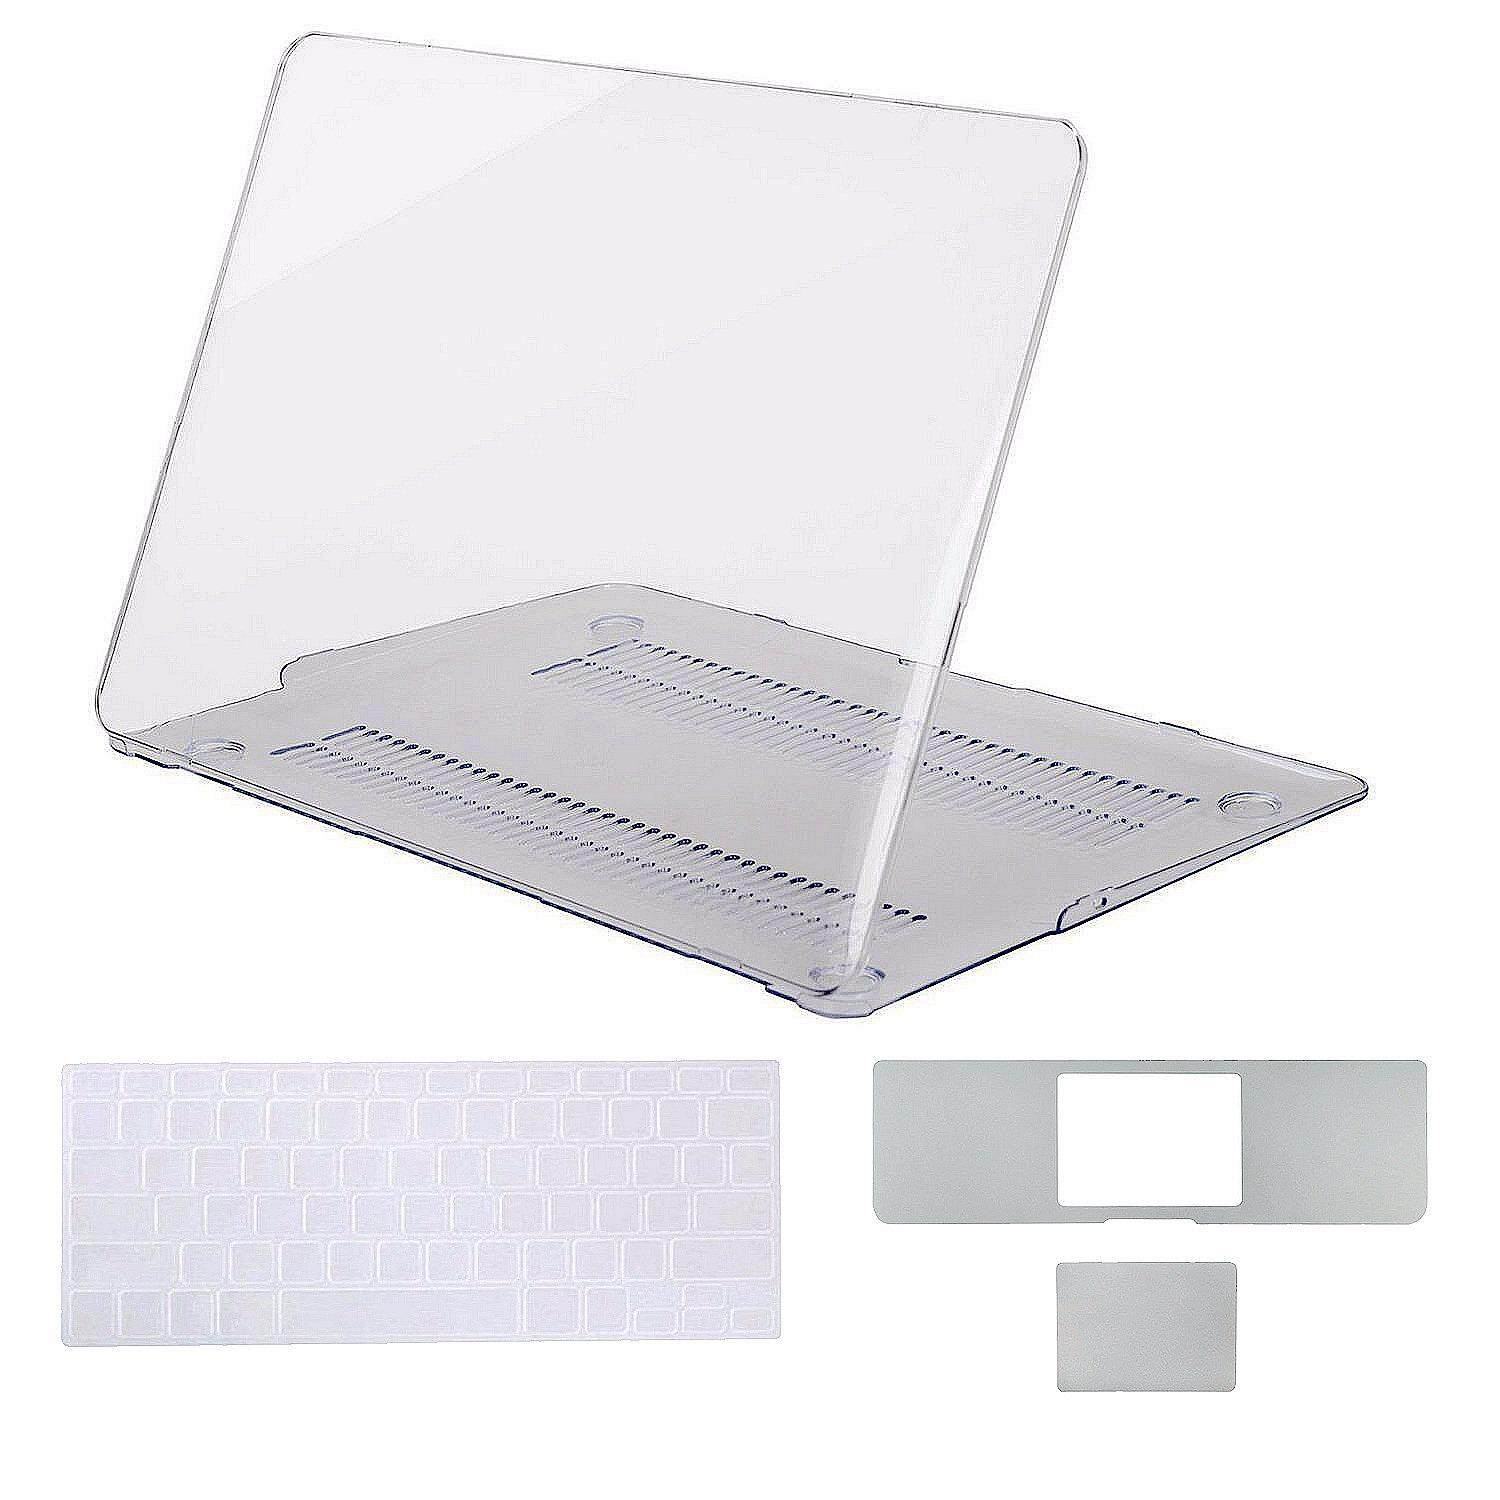 MacBook Air 13 Inch A1369/A1466 Hard Shell Case [3 in 1 Bundle] Keyboard cover, All-inside 13 inch Palm Rest Cover with Trackpad Protector Sticker